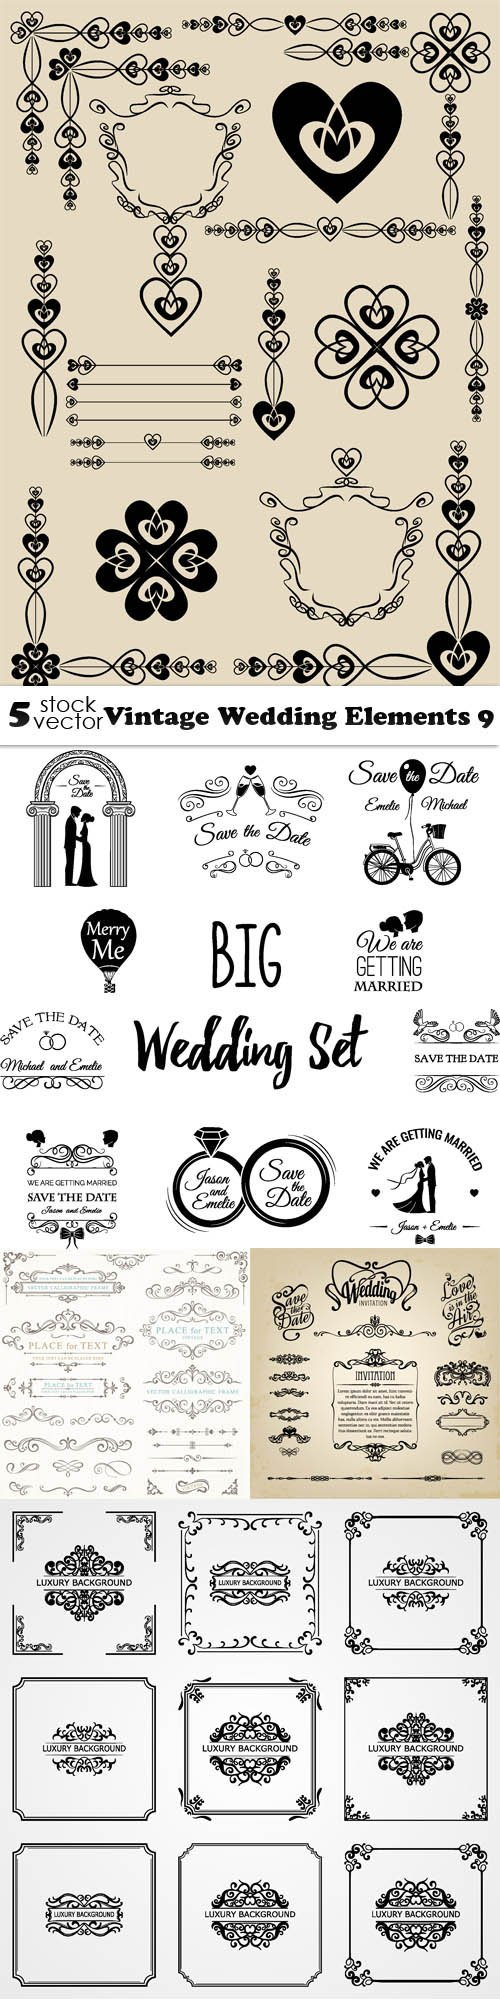 Vectors - Vintage Wedding Elements 9